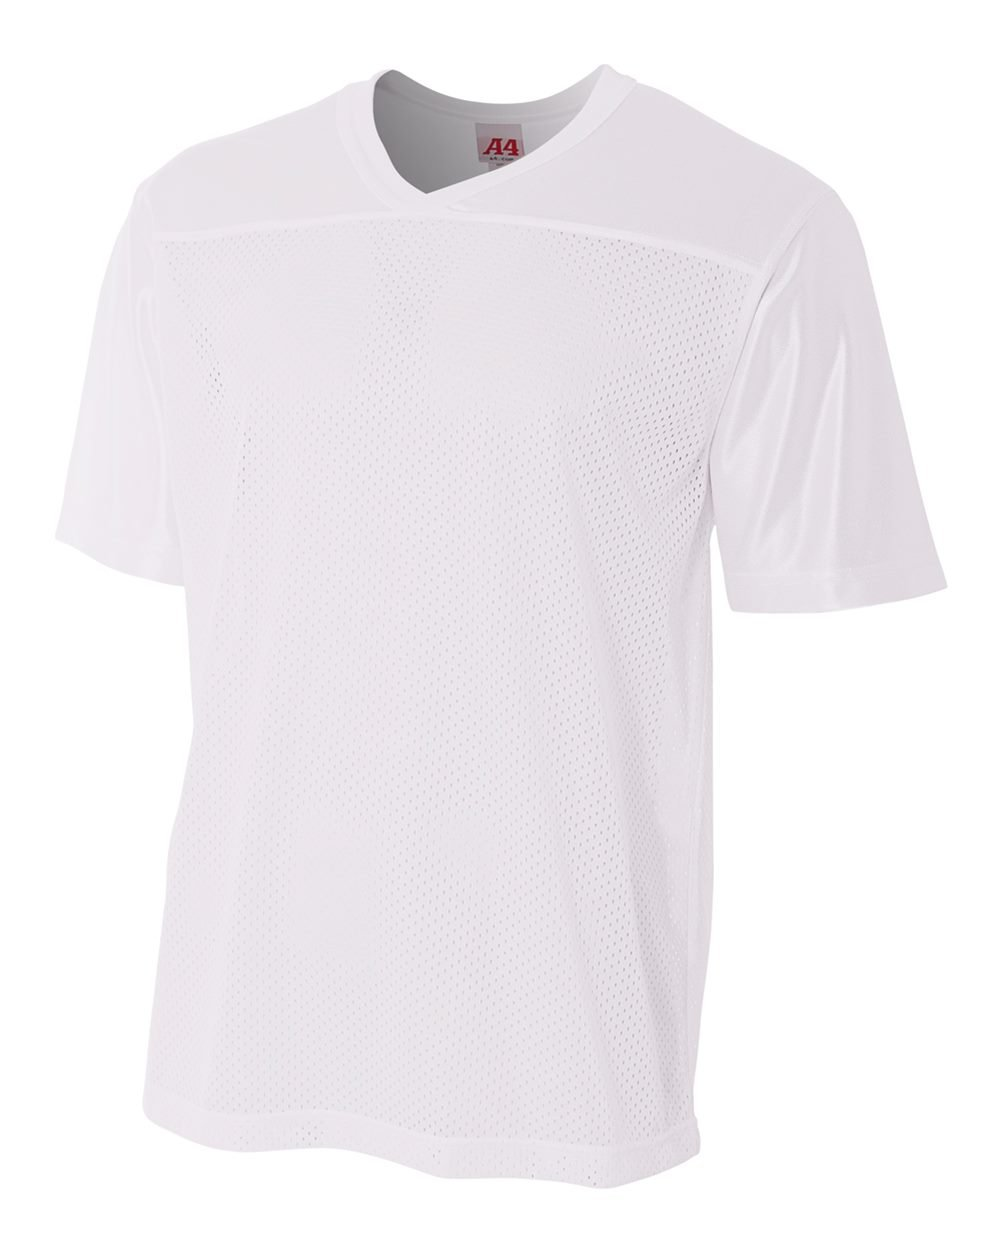 Adult White 2X (Blank Back) Moisture Wicking V-Neck Football Jersey